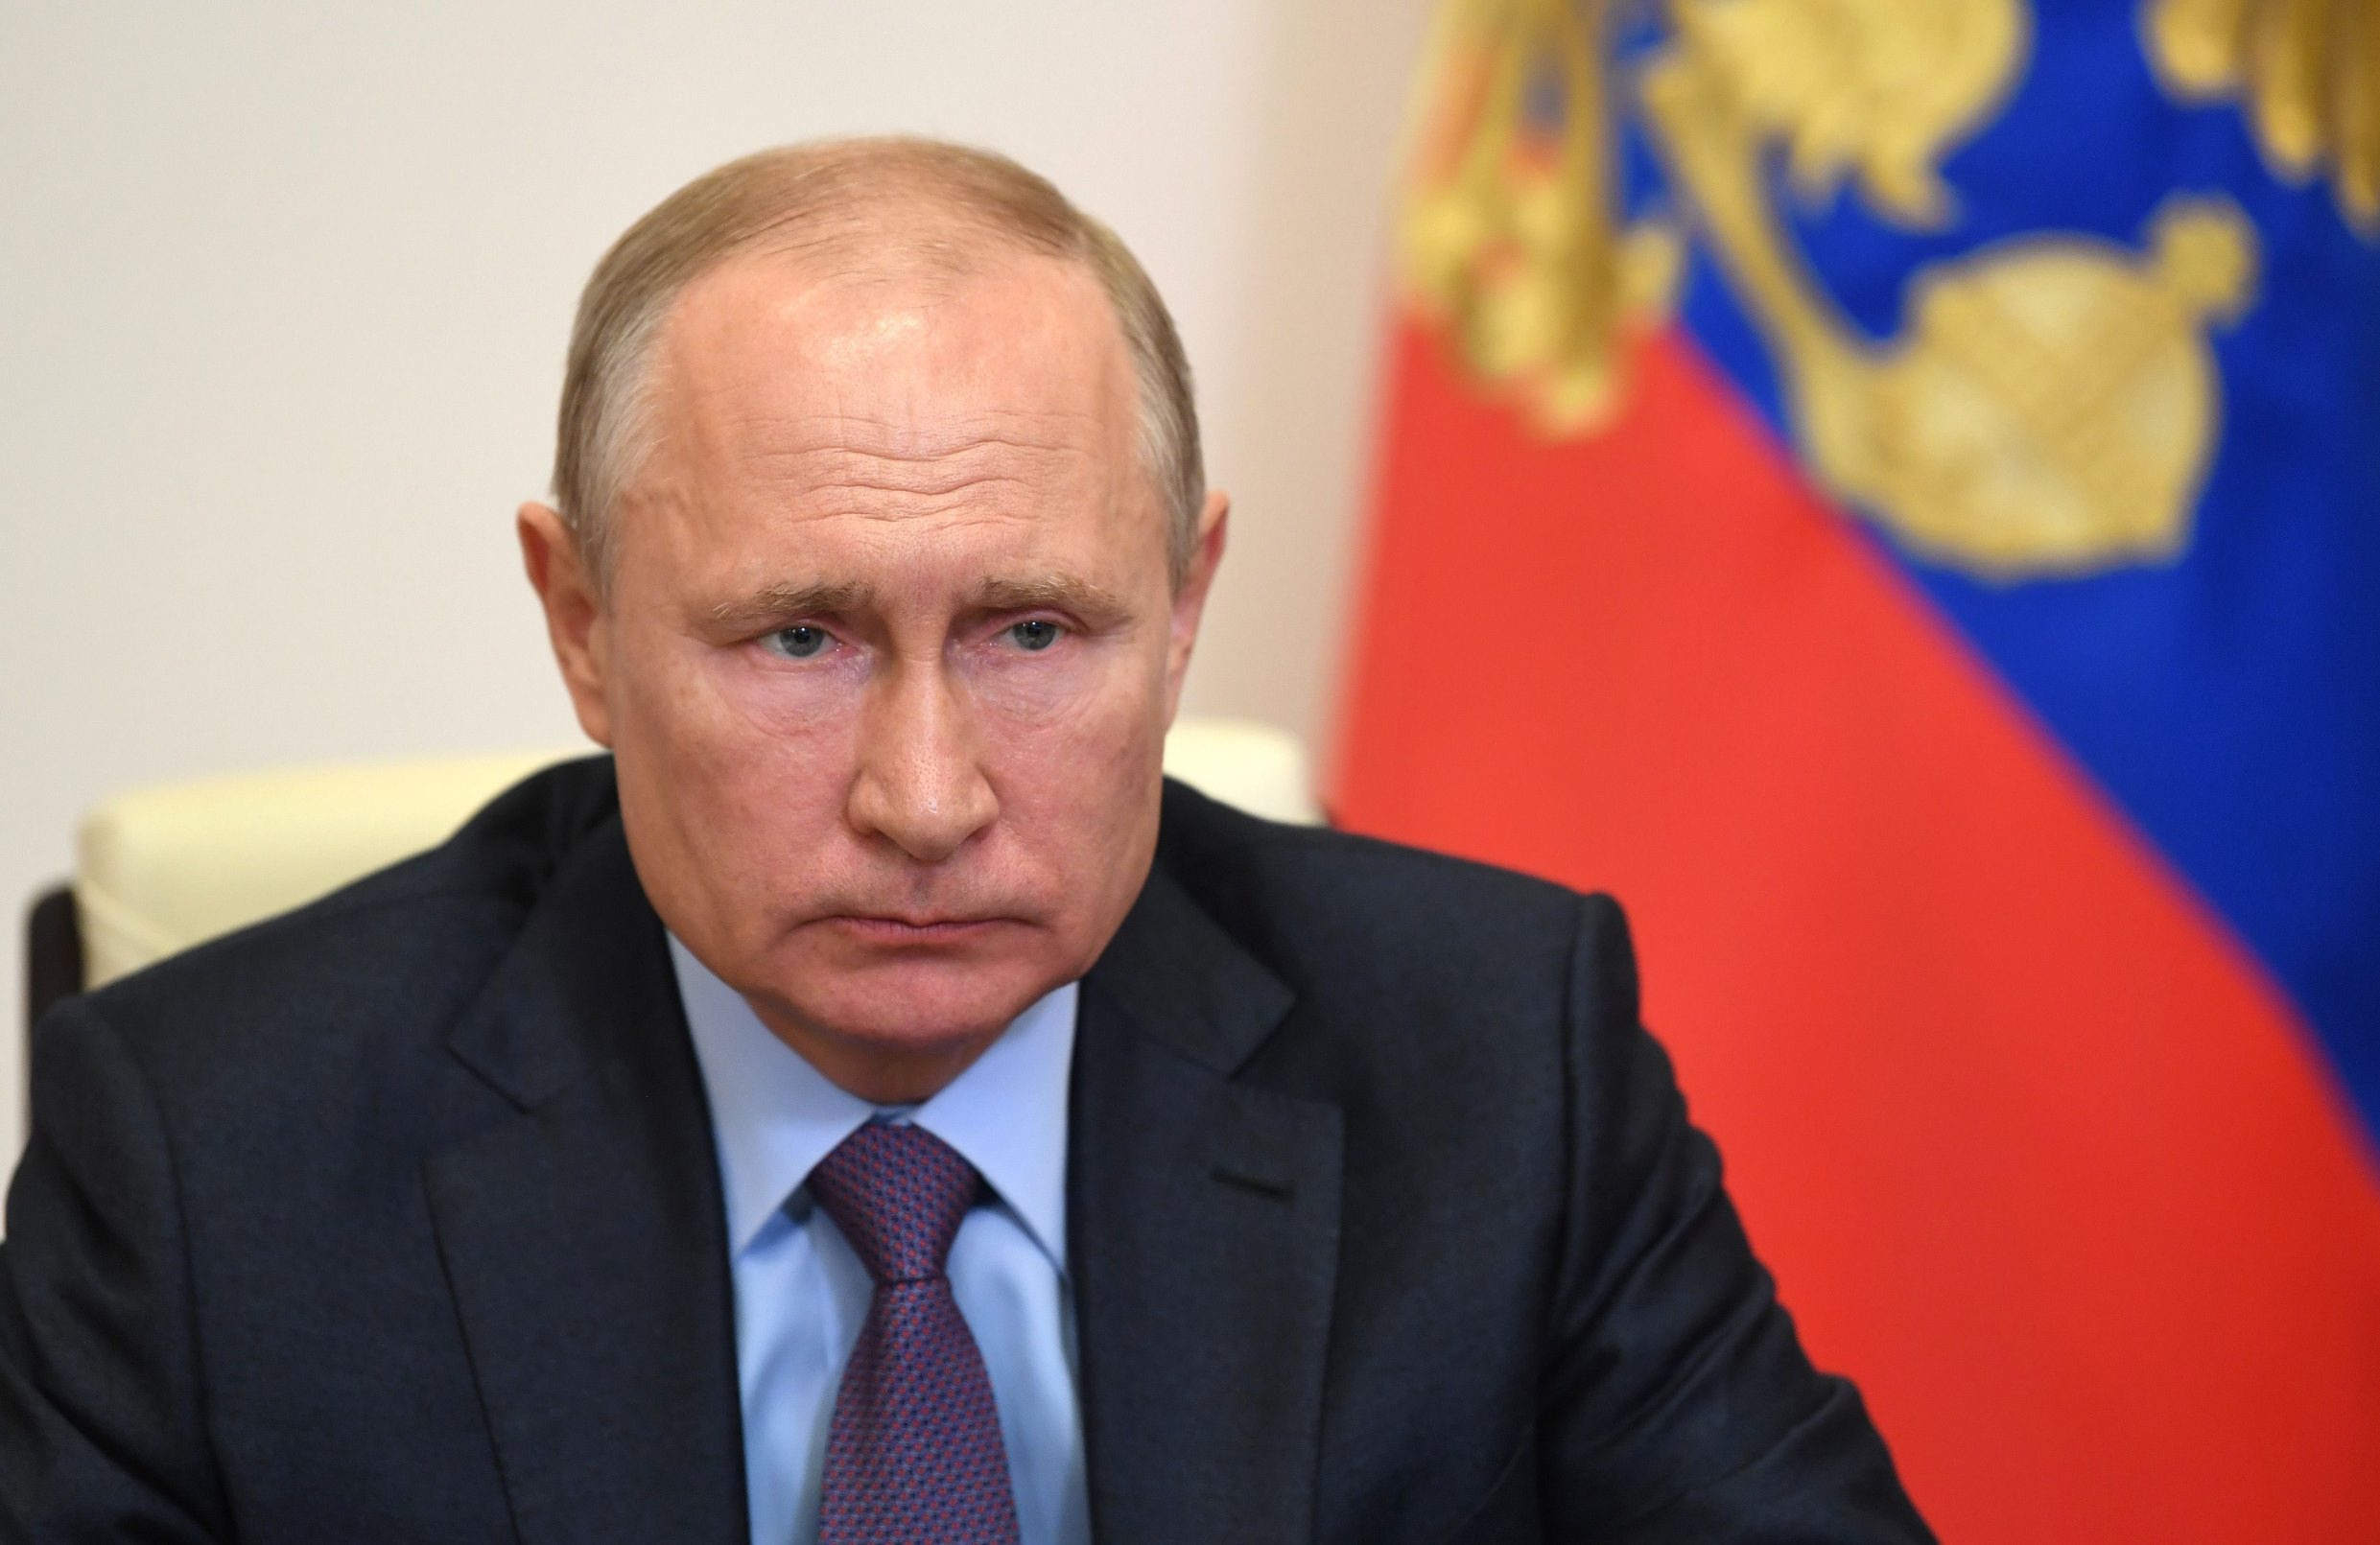 Russian President Vladimir Putin chairs a meeting focused on the support to the aviation industry and the air transportation at his country residence in Novo-Ogaryovo outside Moscow, on May 13, 2020. - The aviation sector has been particularly hard hit by the COVID-19 outbreak, (the novel coronavirus). (Photo by Alexey NIKOLSKY / SPUTNIK / AFP)